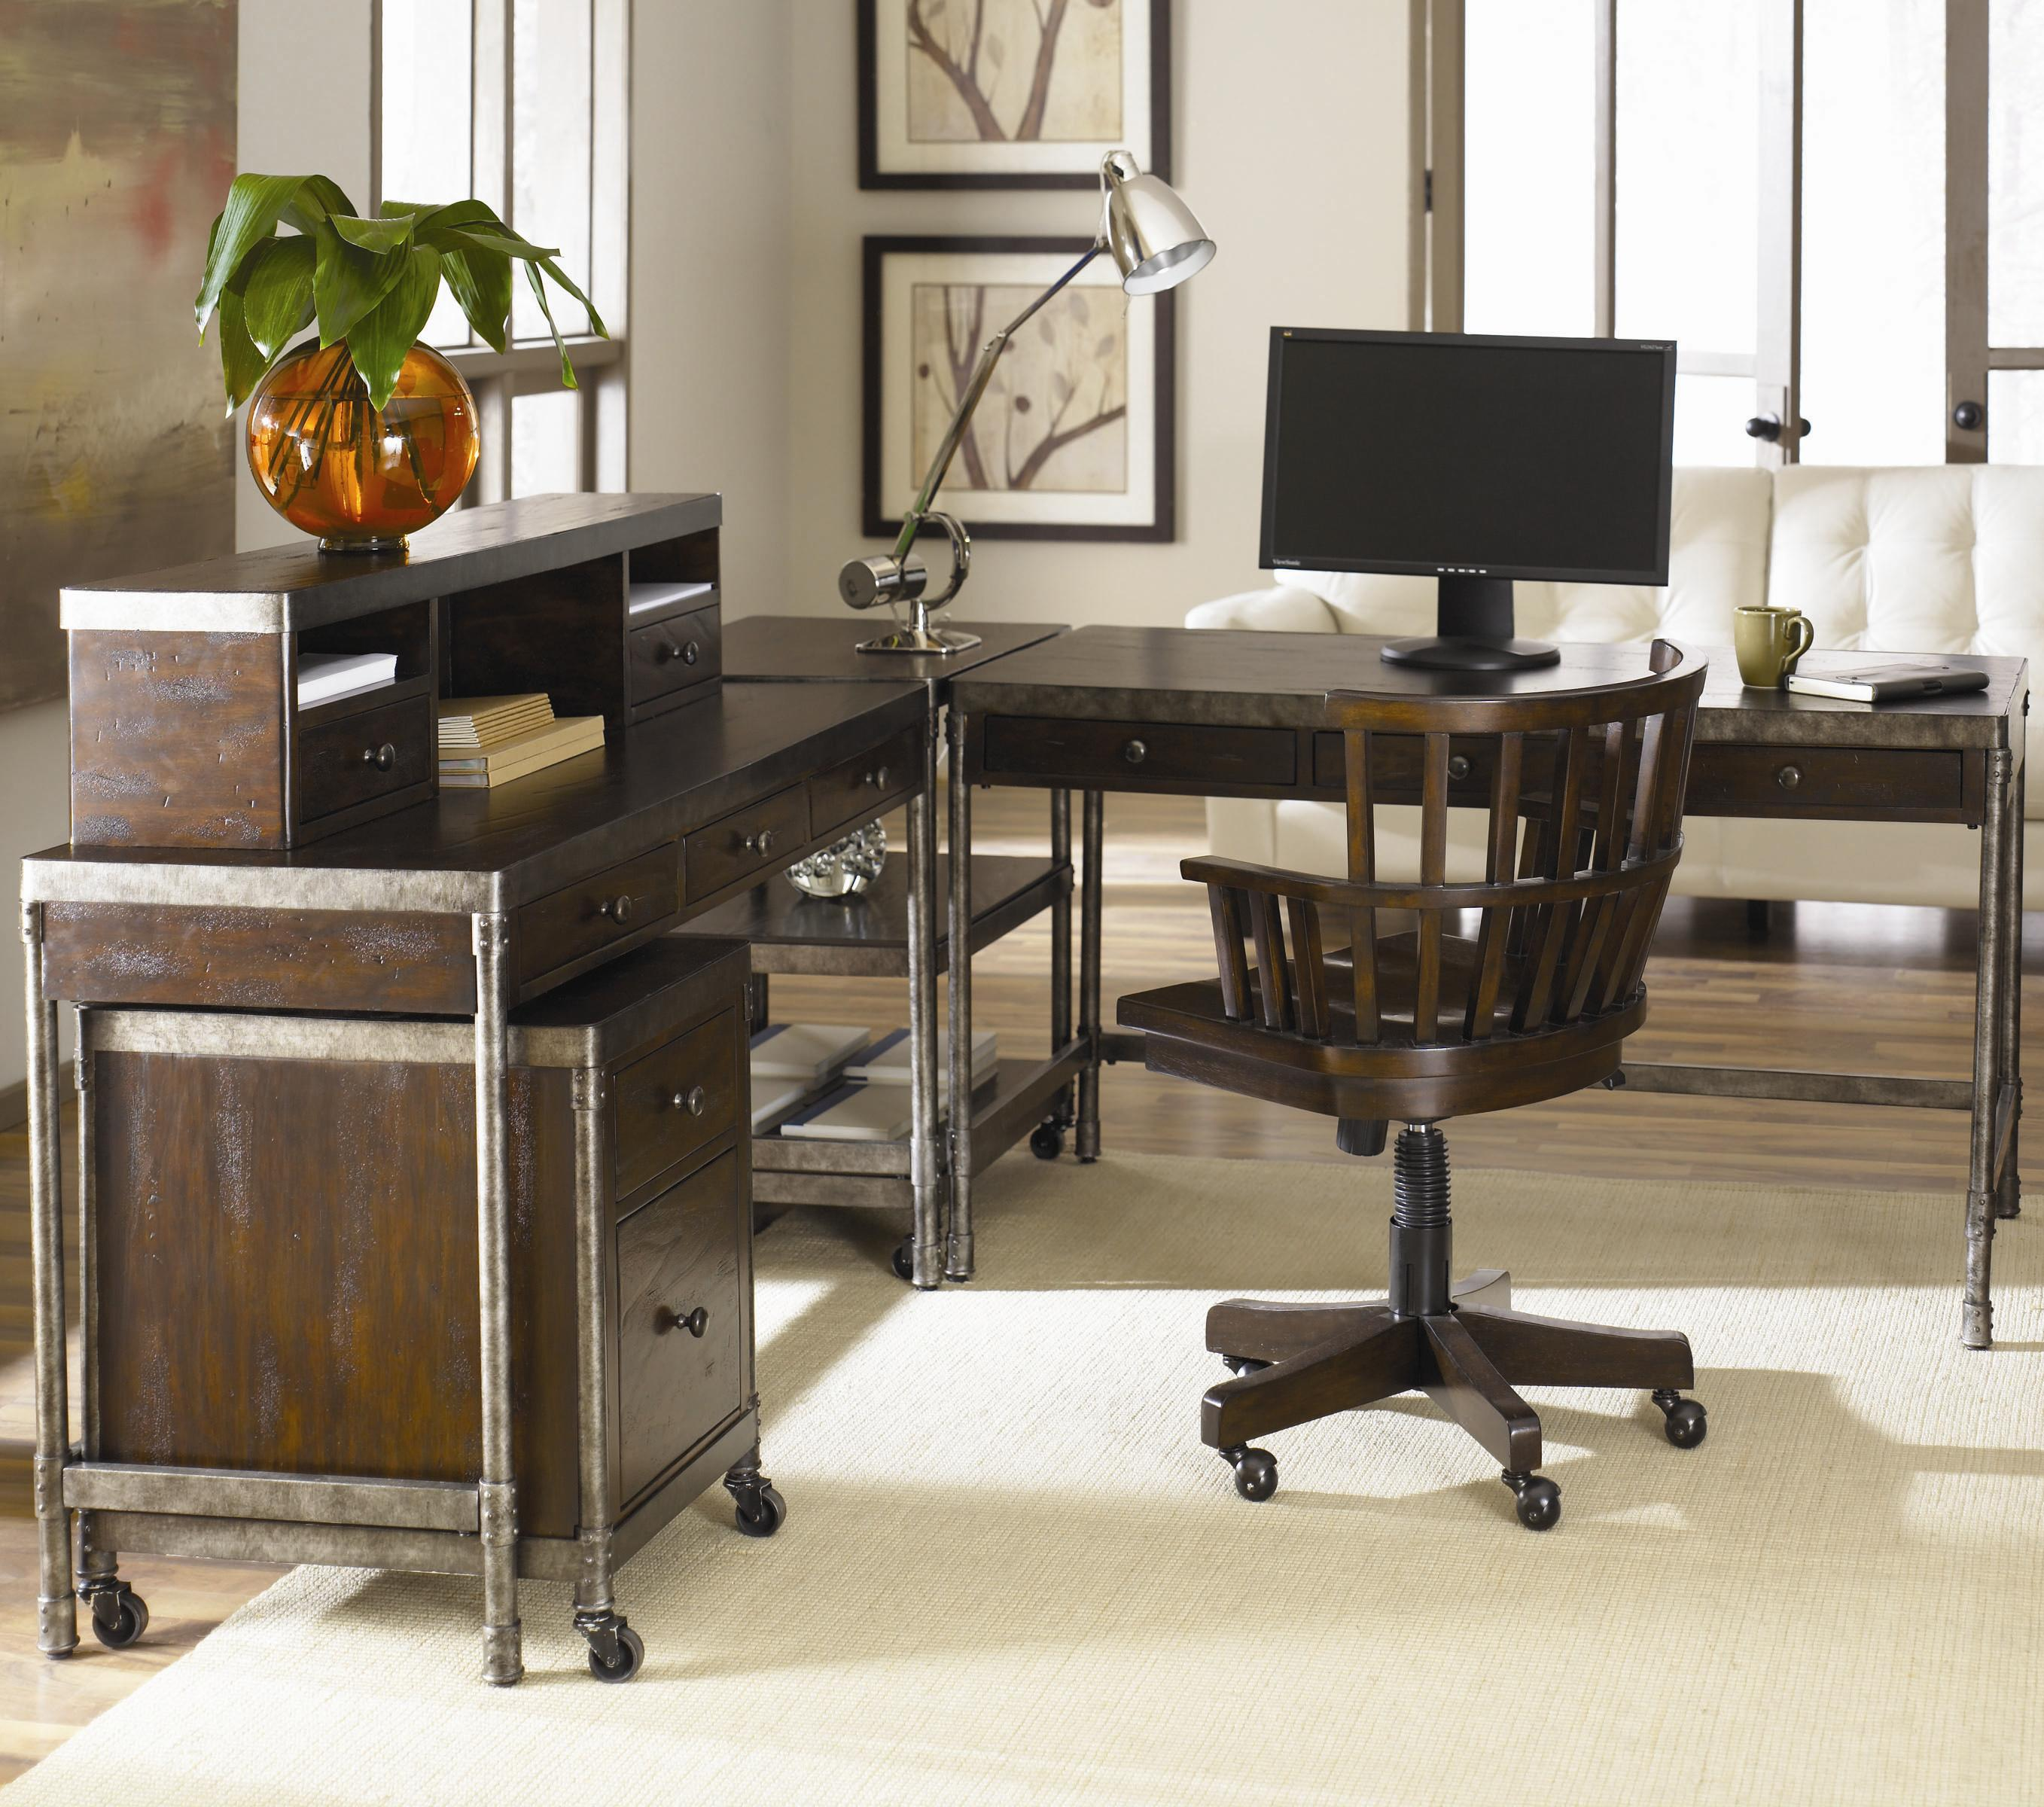 Hammary structure office desk chair w wheels boulevard home furnishings executive desk chairs